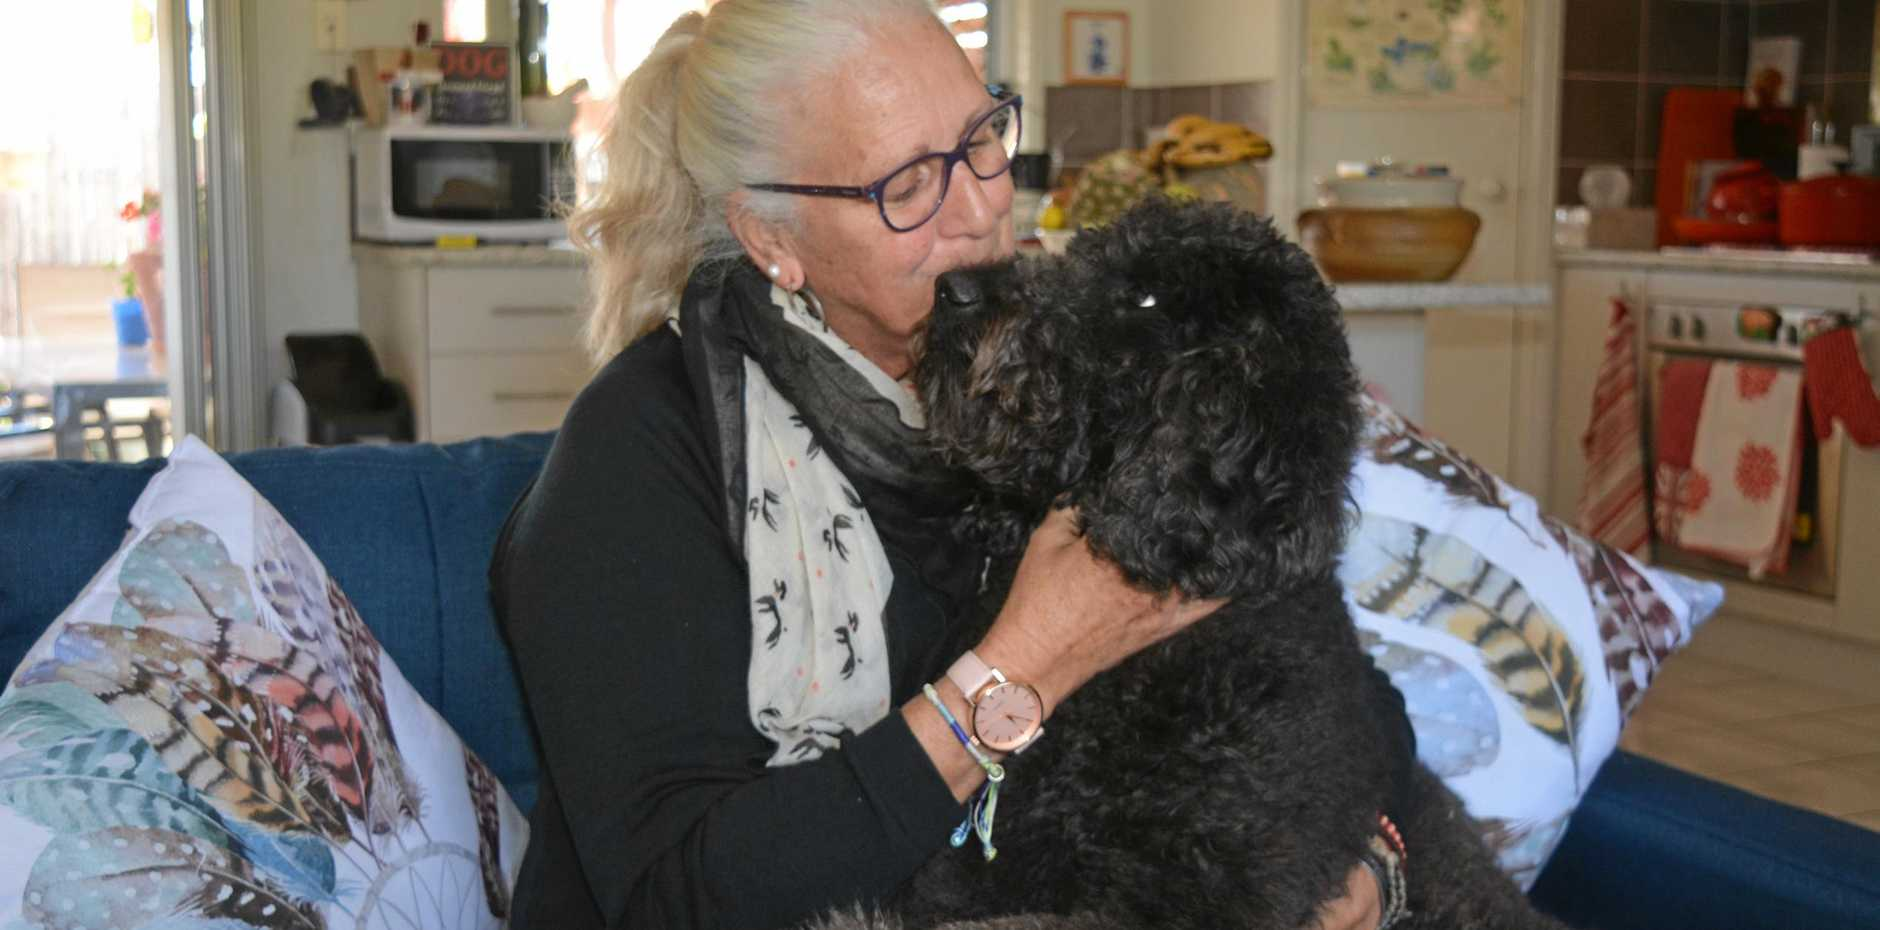 BIG LOVE: Veteran Joy O'Donohue said she couldn't survive without Chicko.